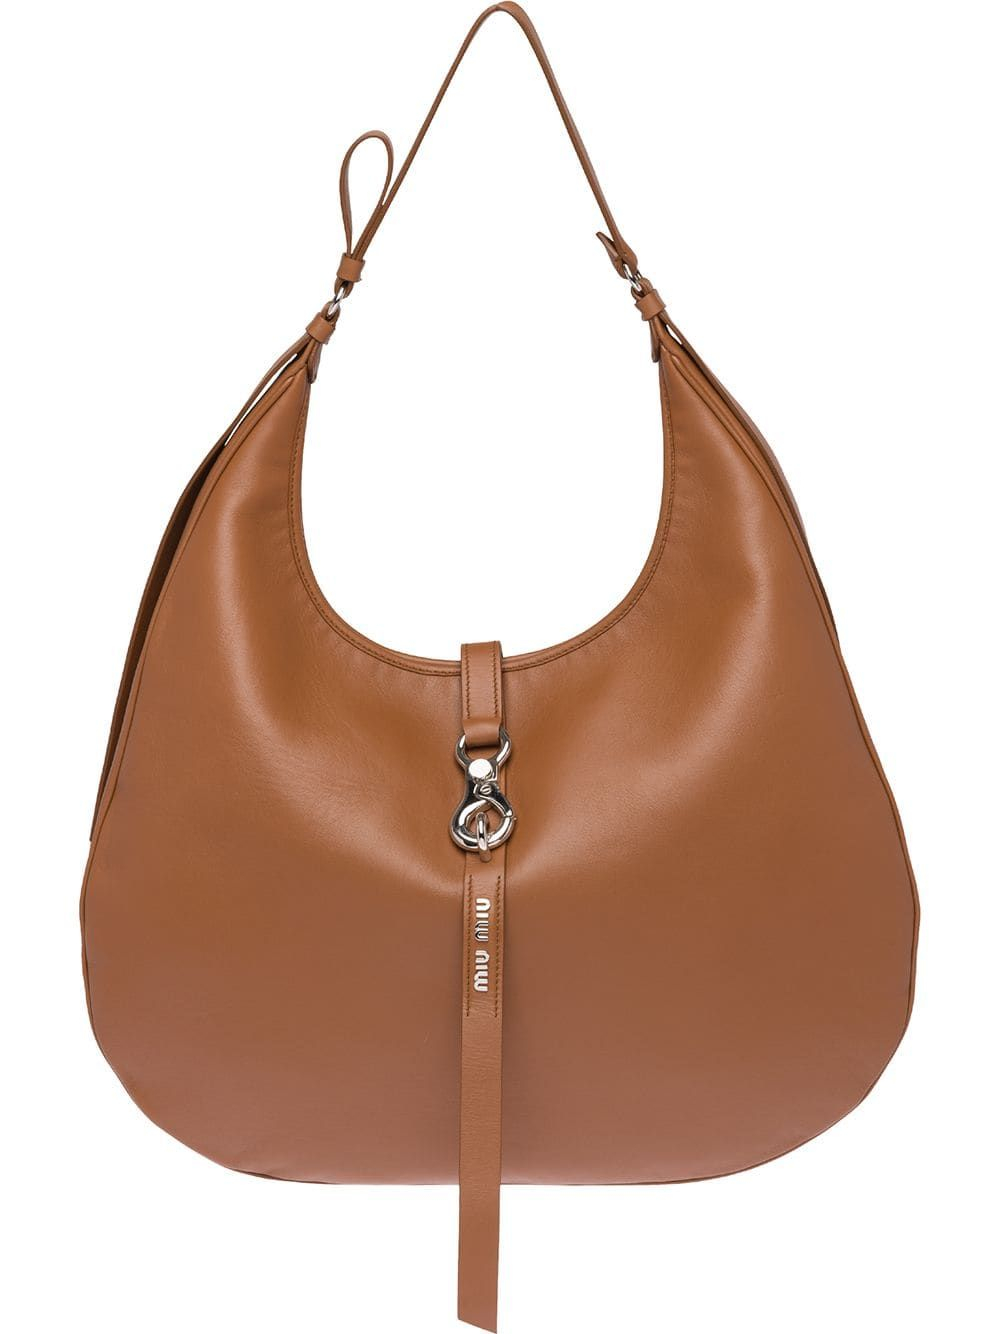 Miu Miu Leather Hobo Bag Farfetch Leather Hobo Bag Brown Leather Hobo Hobo Bag